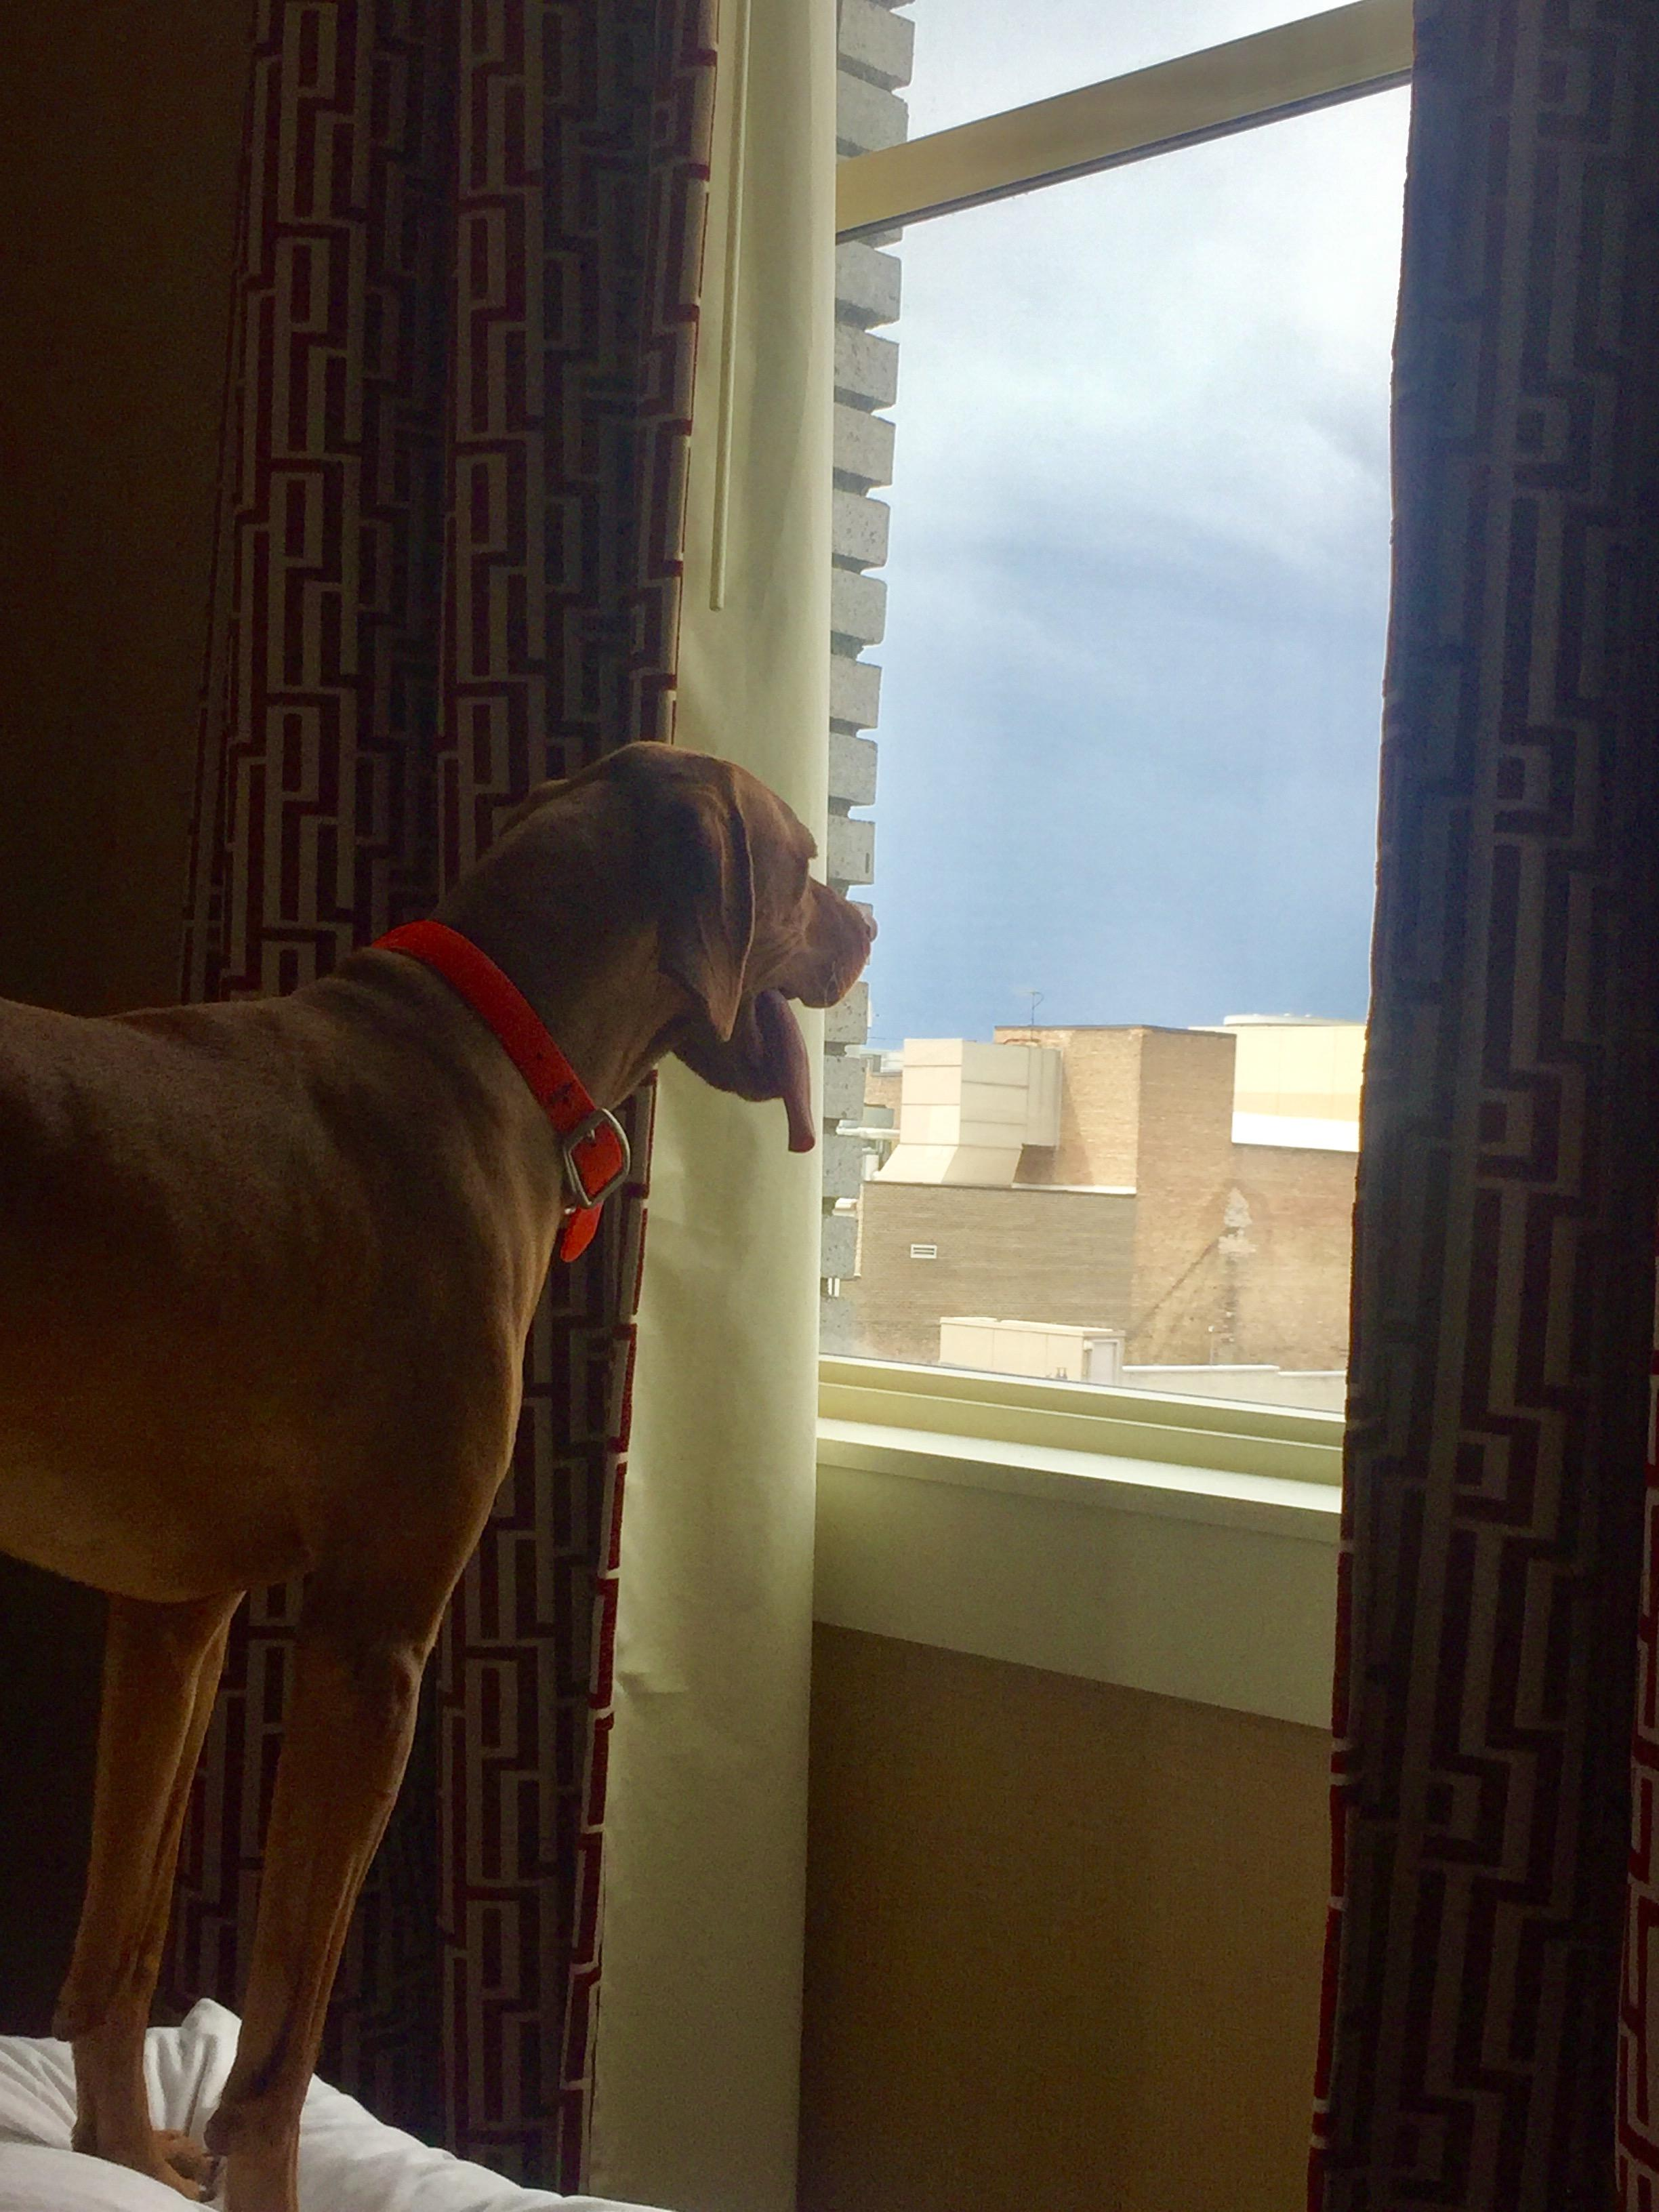 He loves the city view!